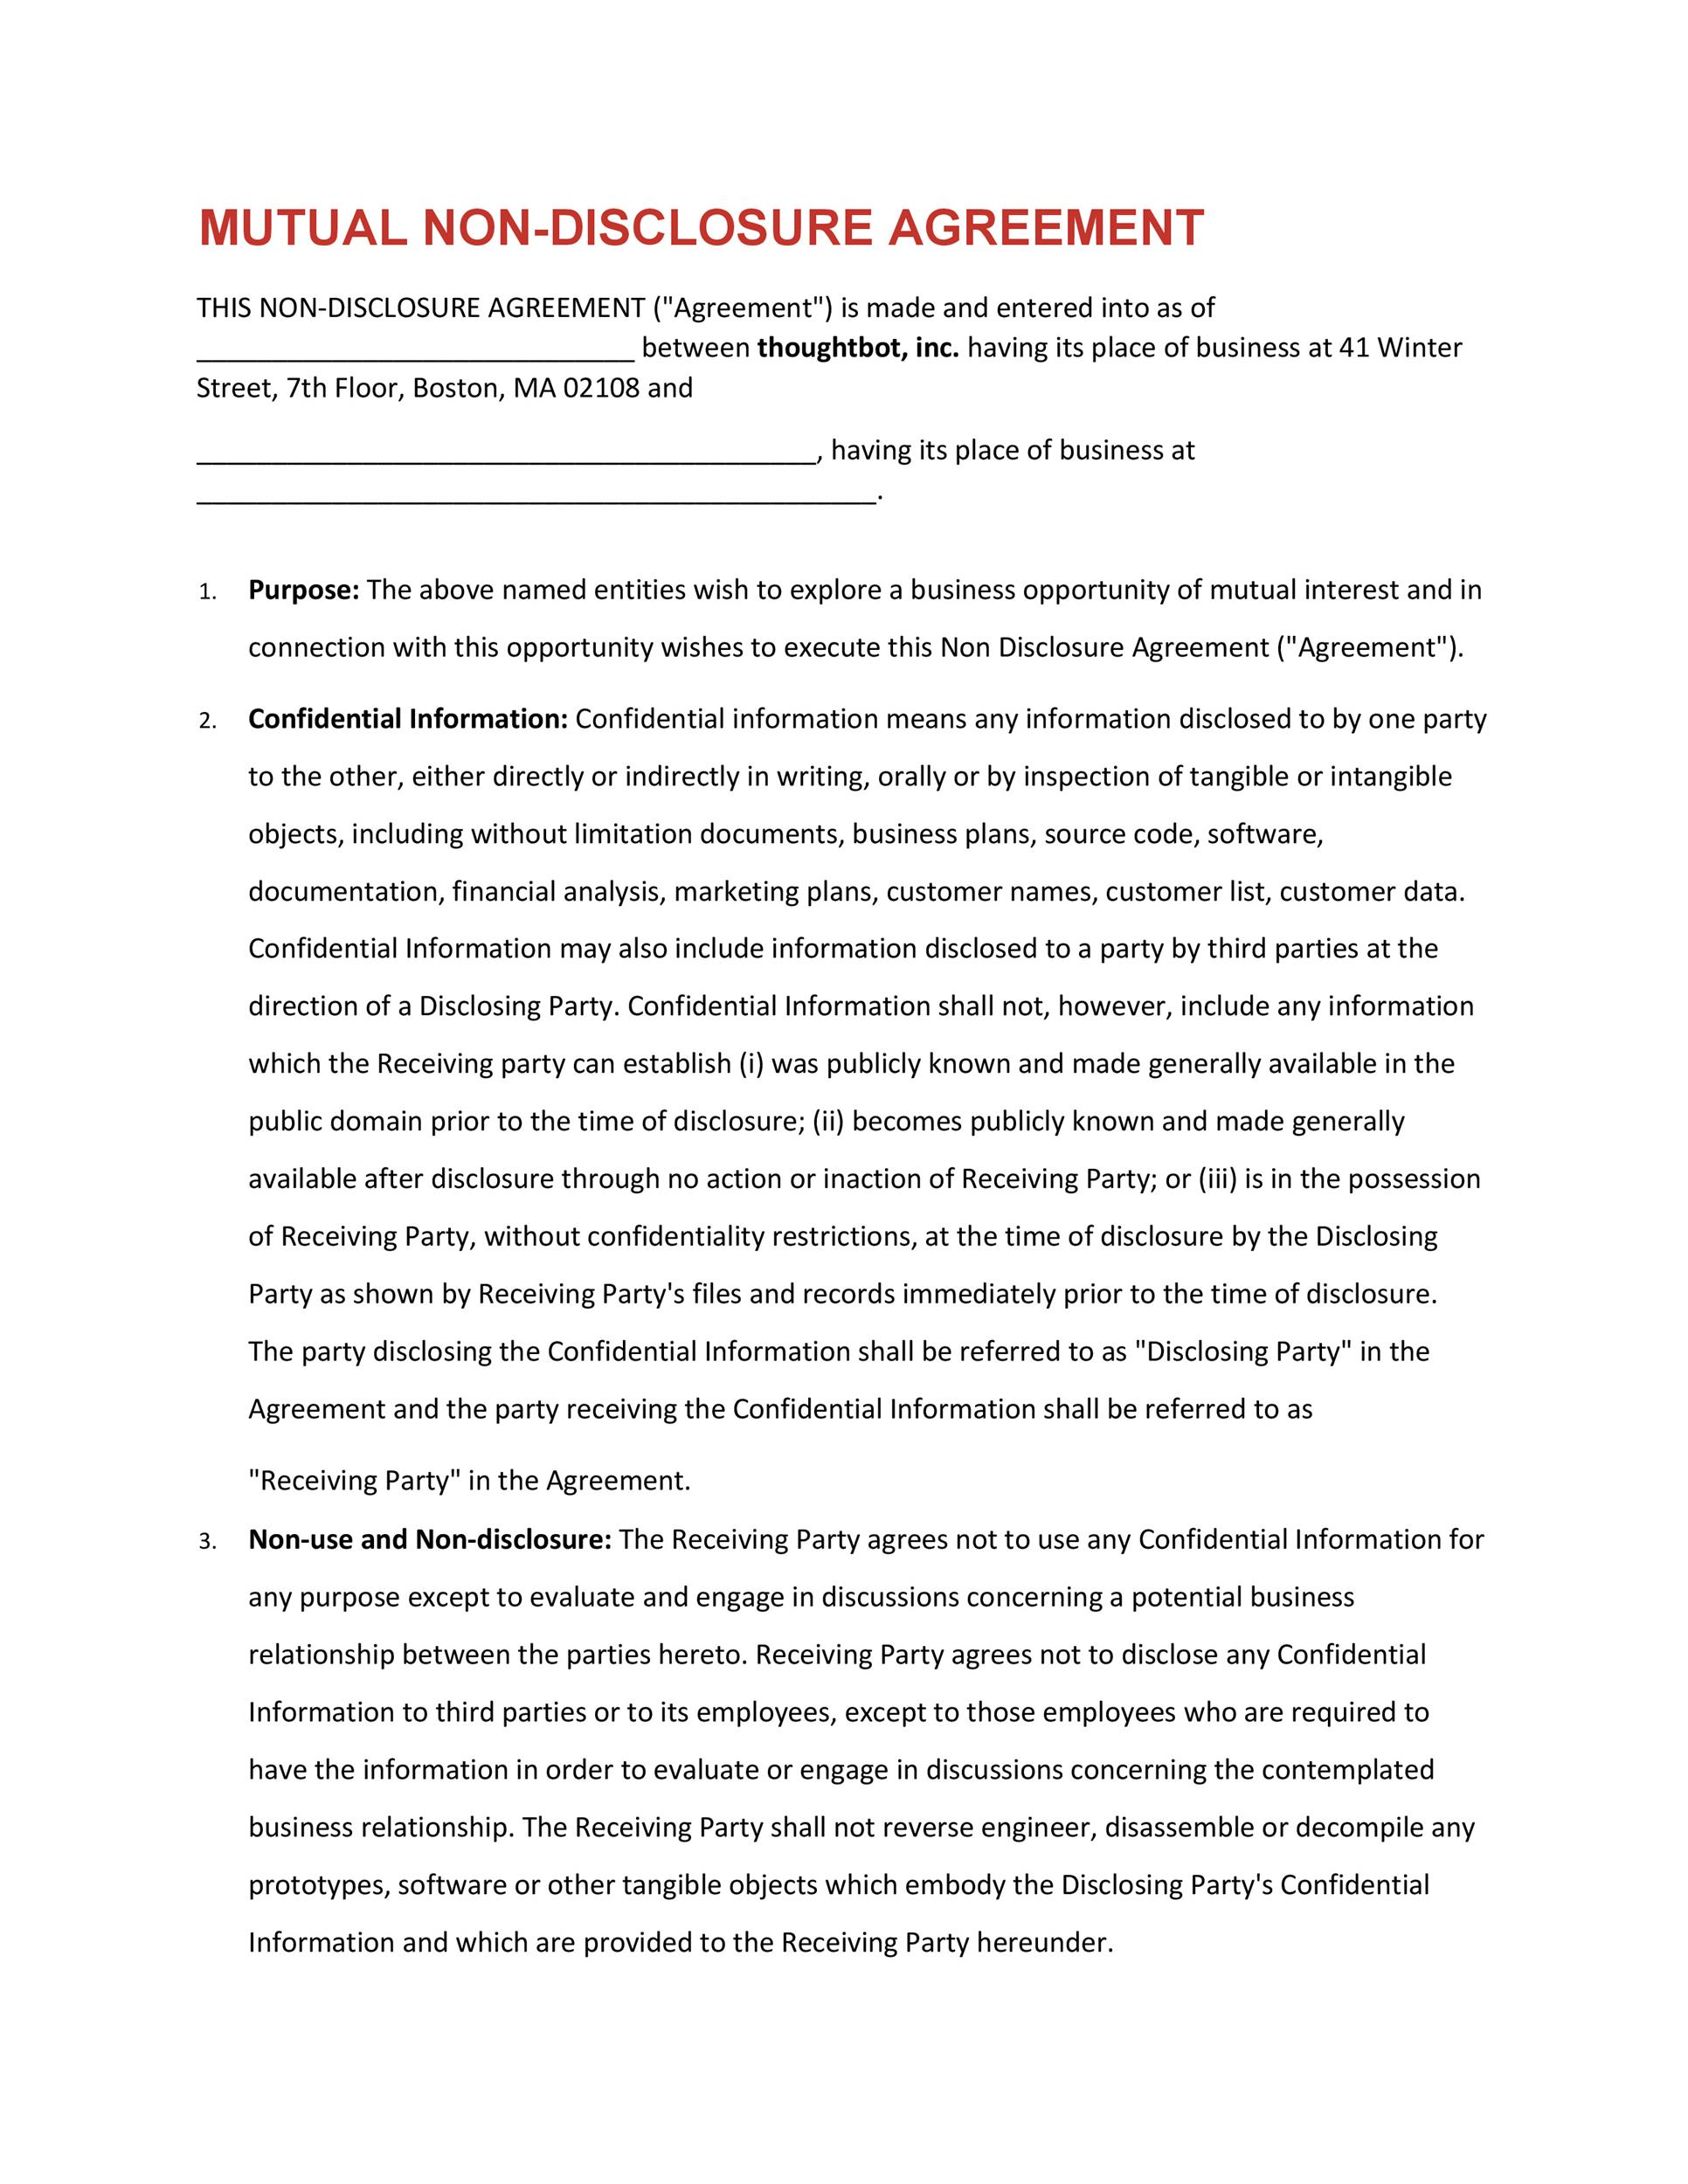 40 Non Disclosure Agreement Templates, Samples  Forms - Template Lab - business non disclosure agreement